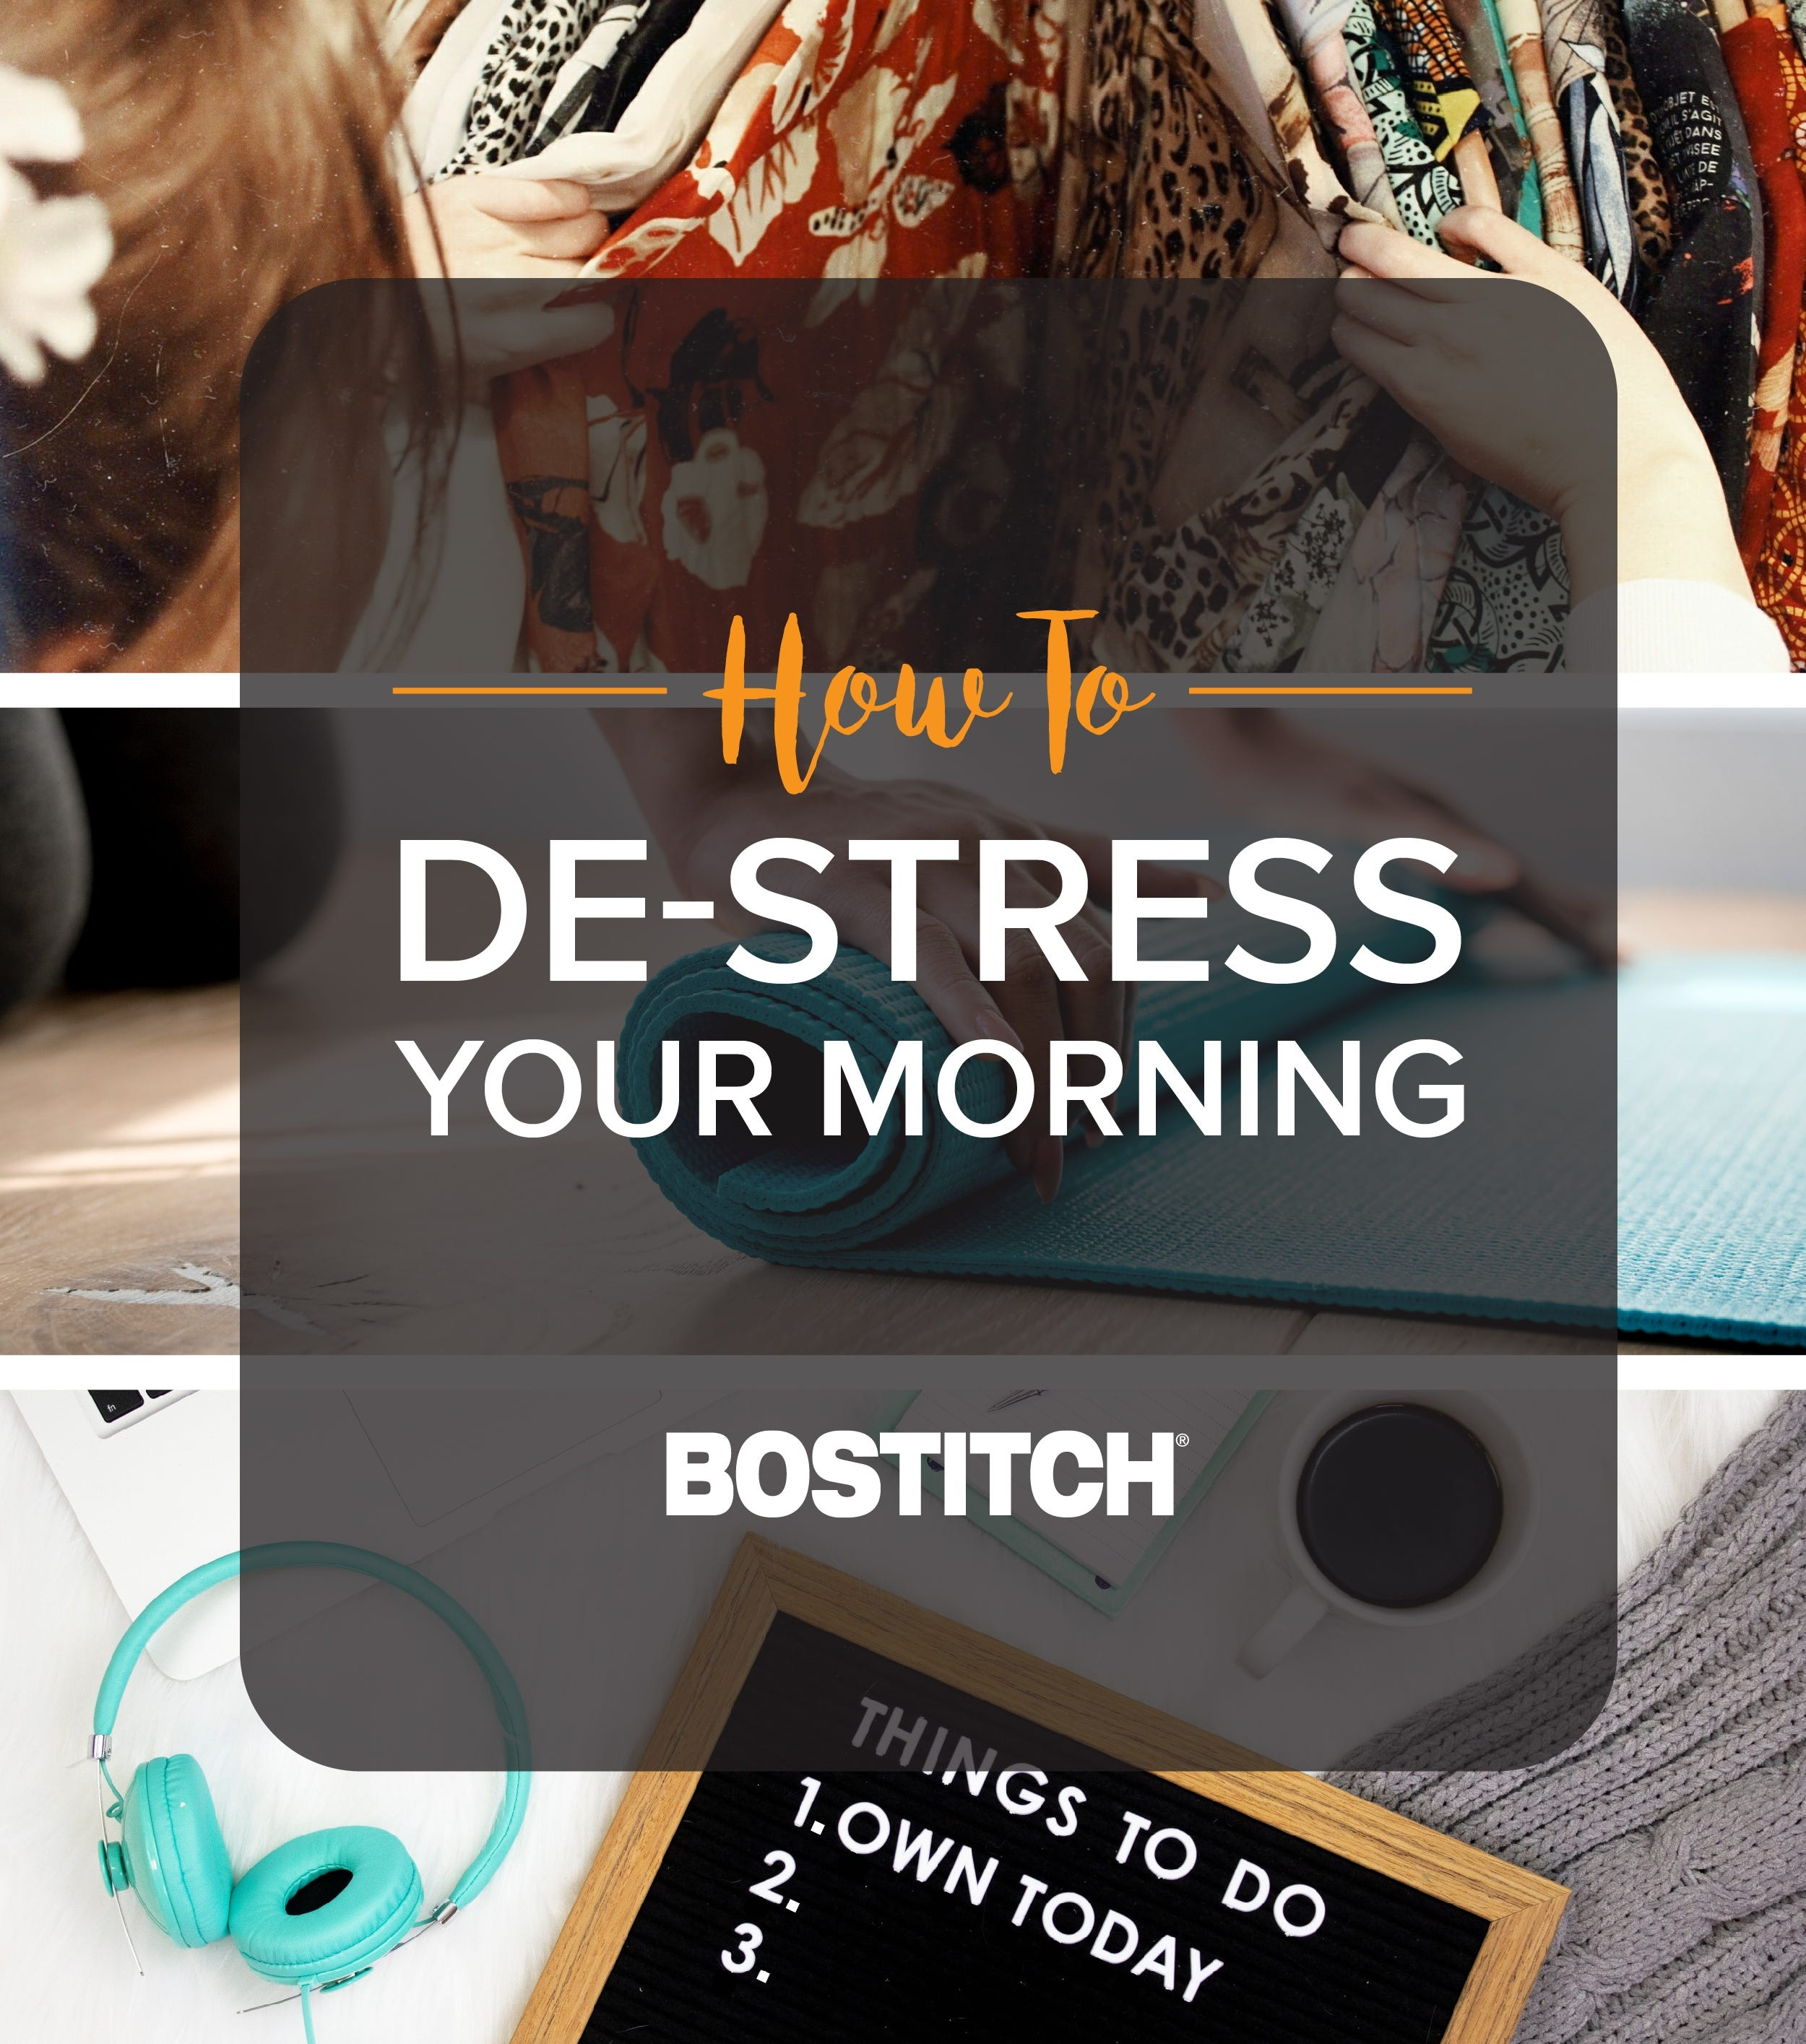 How to De-Stress Your Morning Pinterest